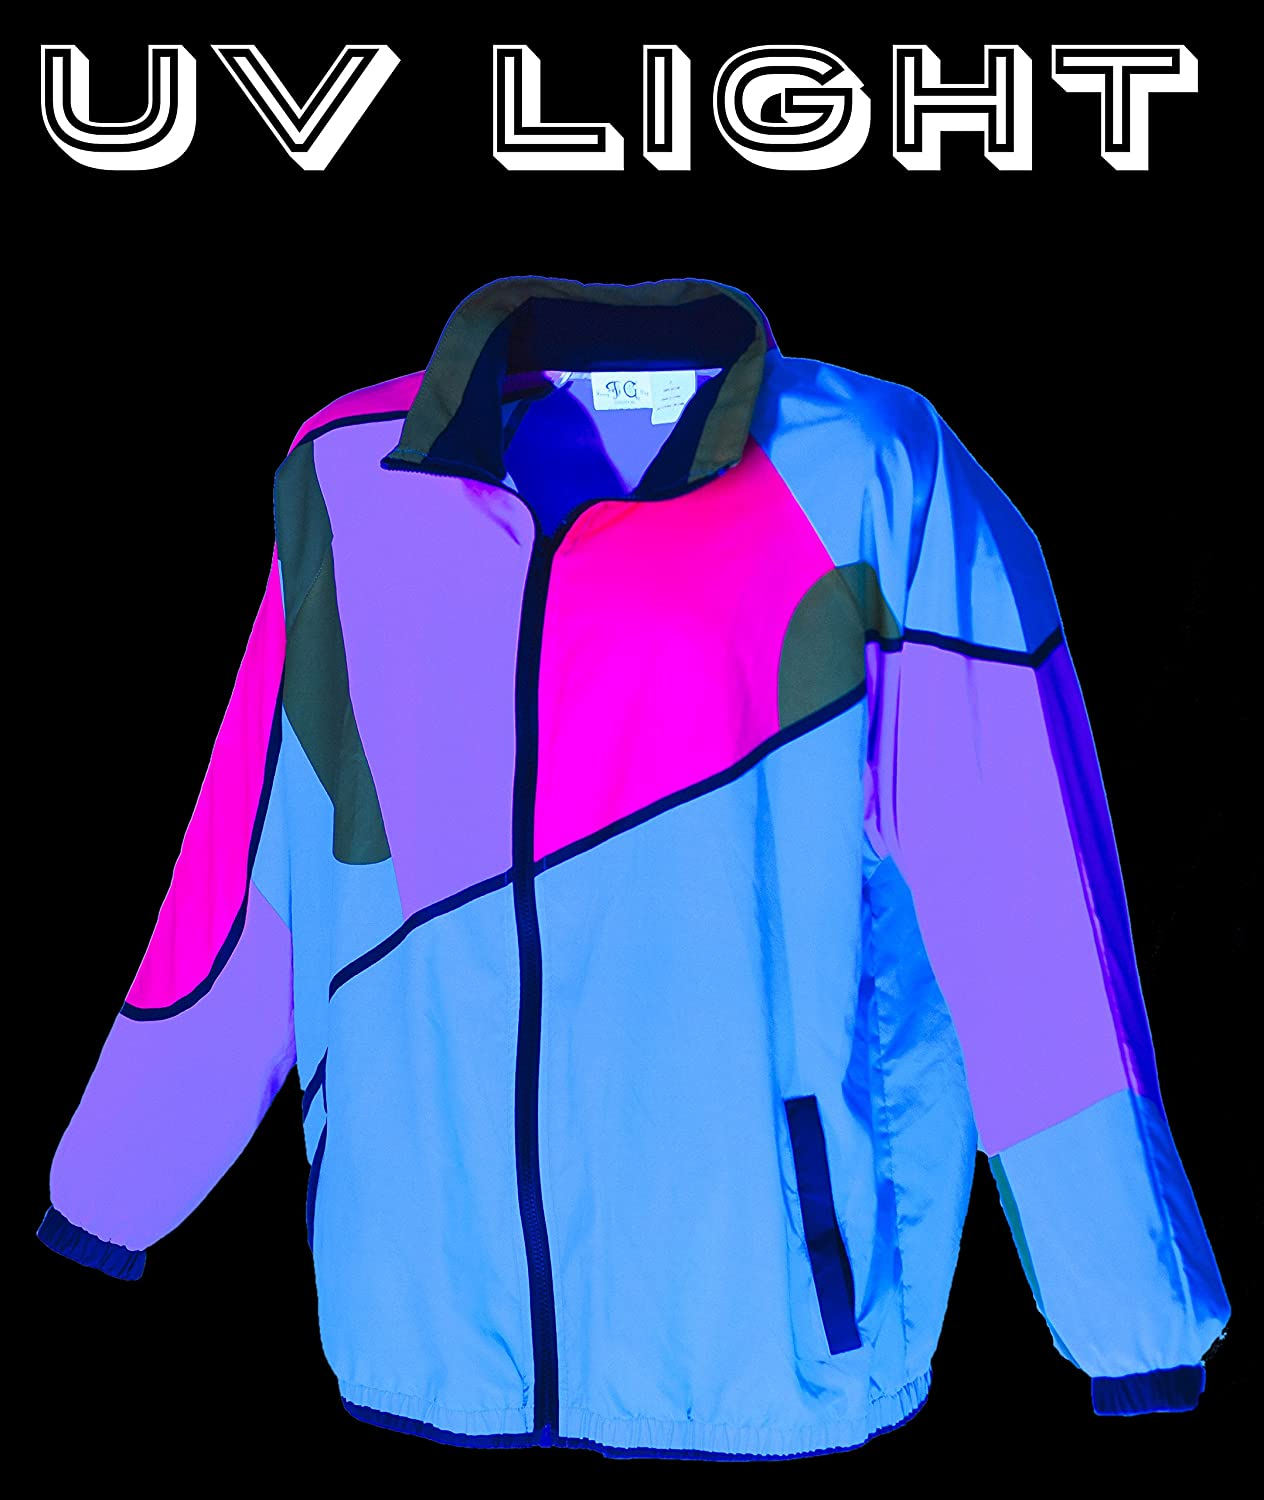 Funny Guy Mugs 80s /& 90s Retro Neon Windbreakers